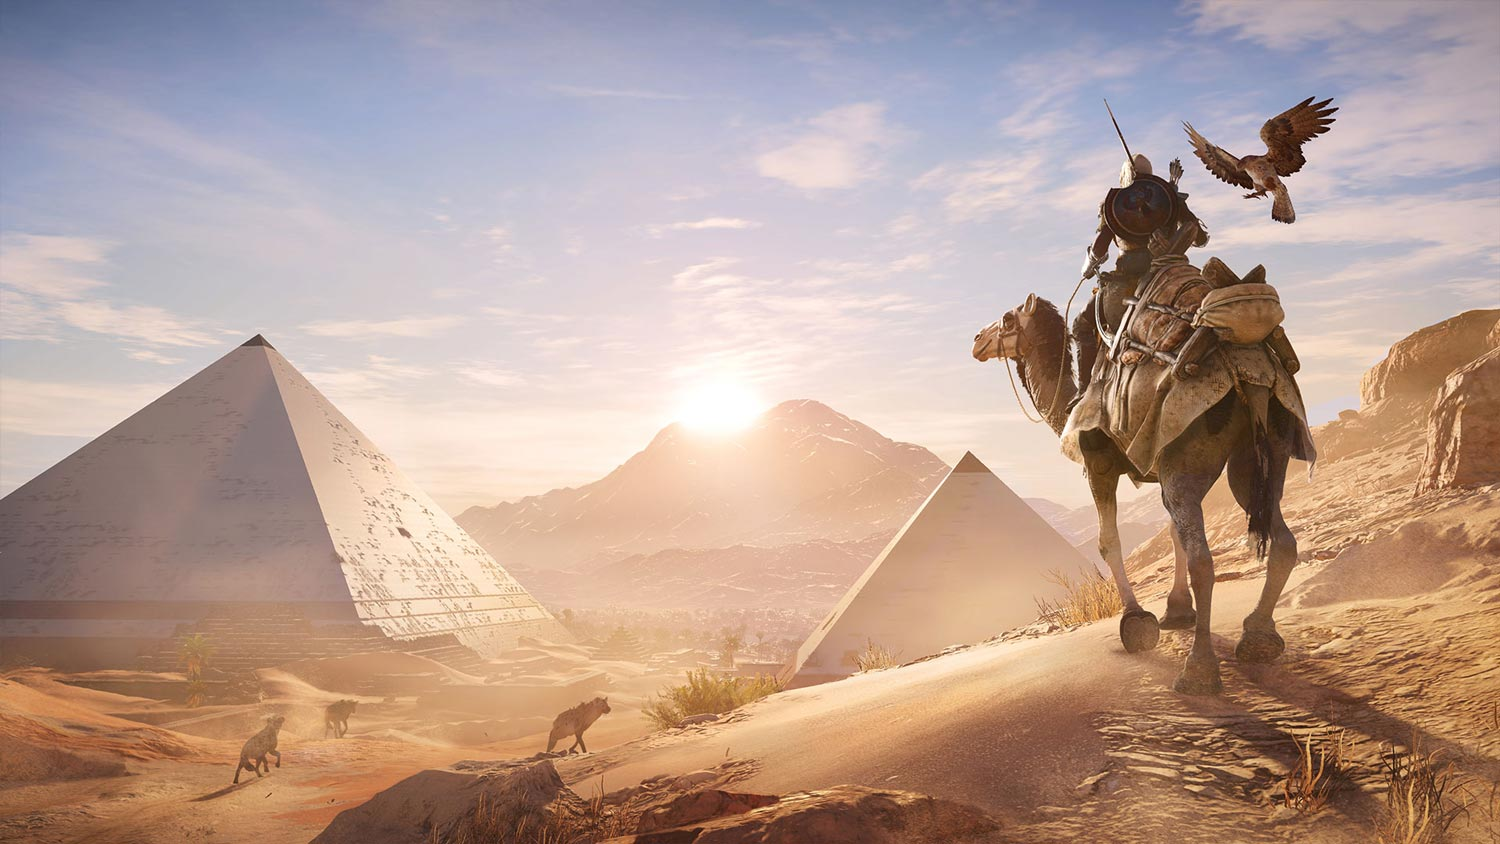 Assassin's Creed Origins - piramidi in lontananza.